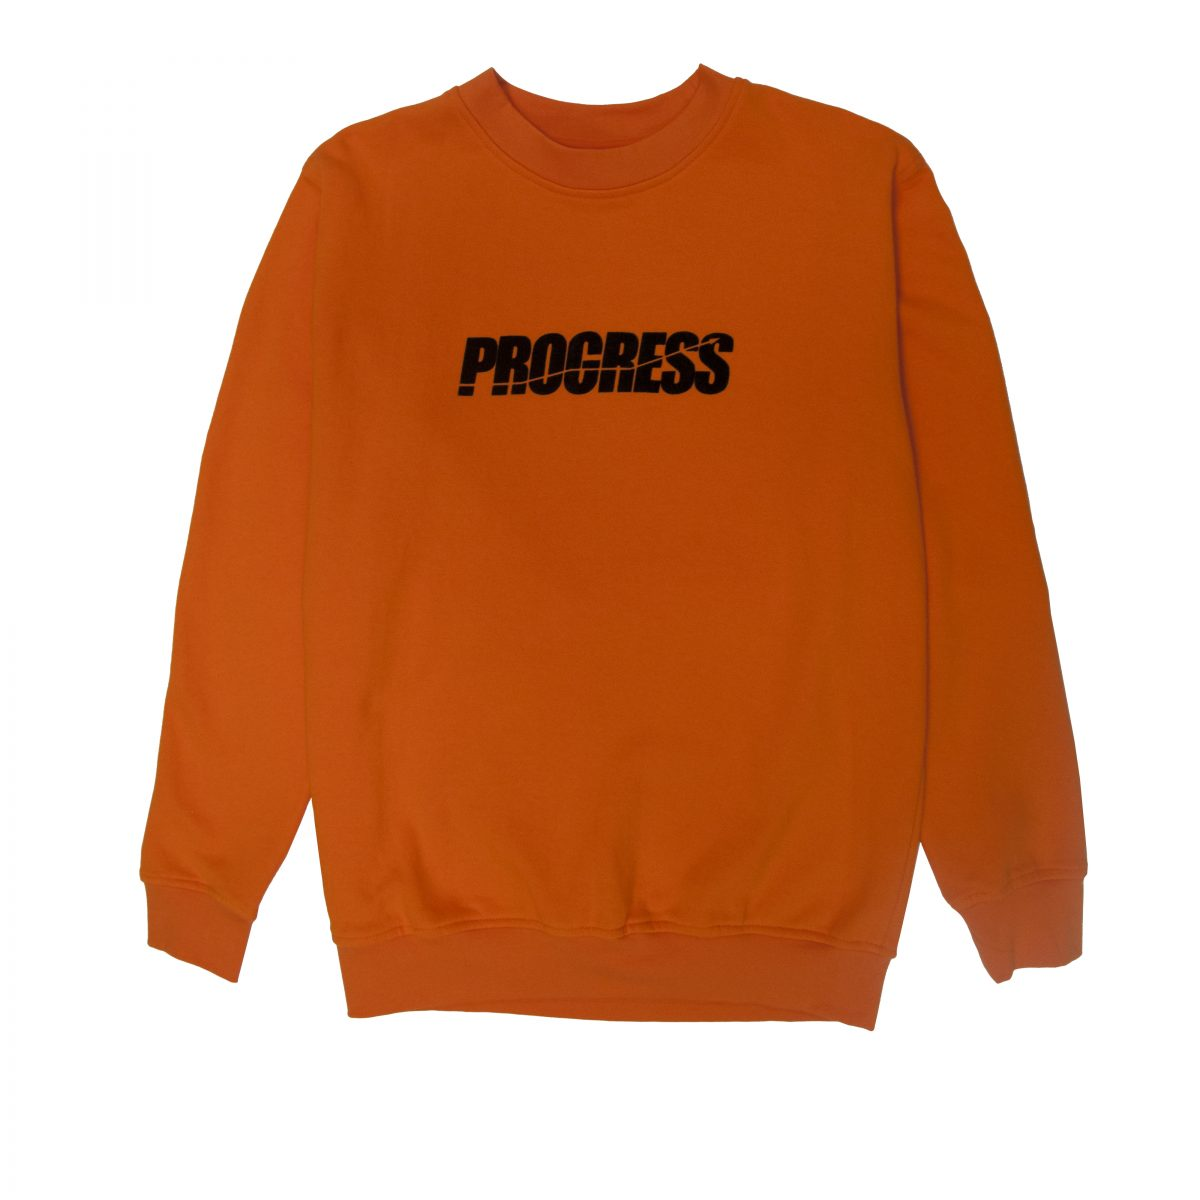 LOGO FELT ORANGE SWEATER